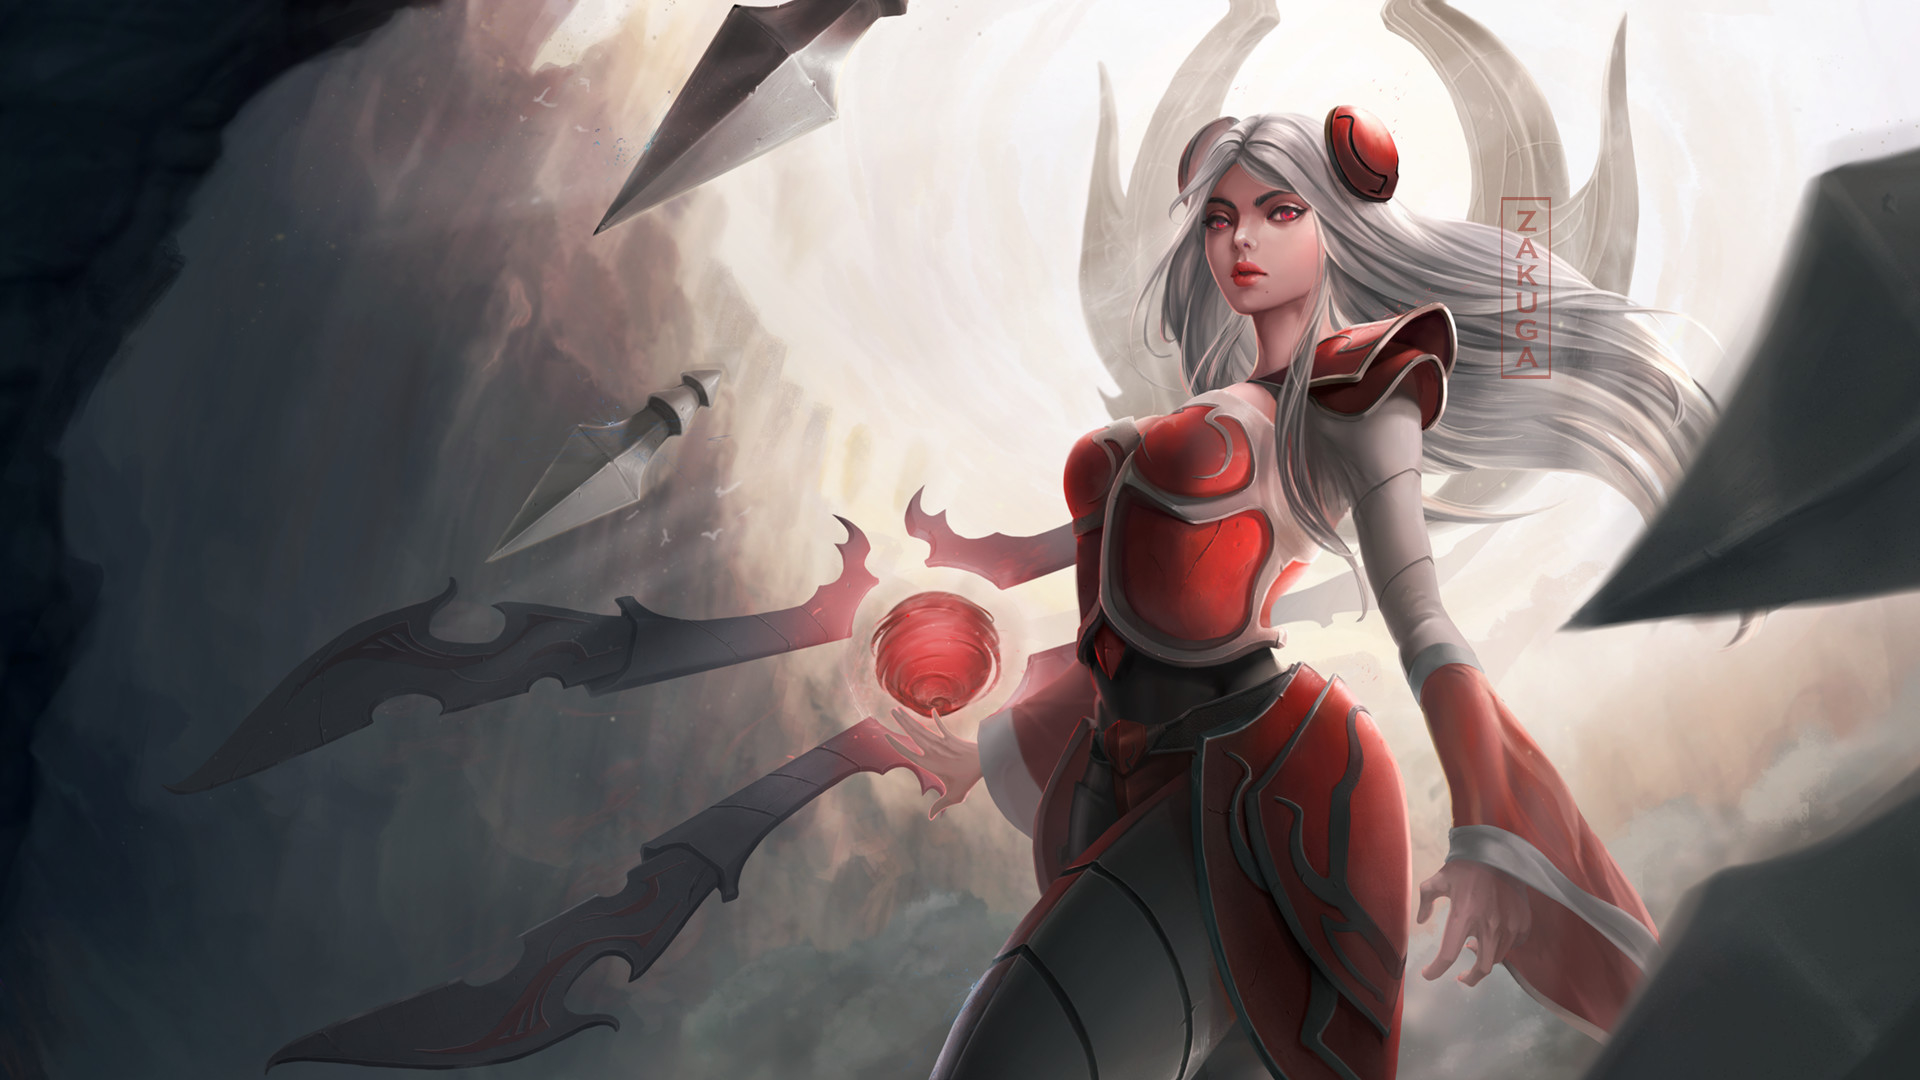 Wallpaper Of Irelia League Of Legends Video Game Background Hd